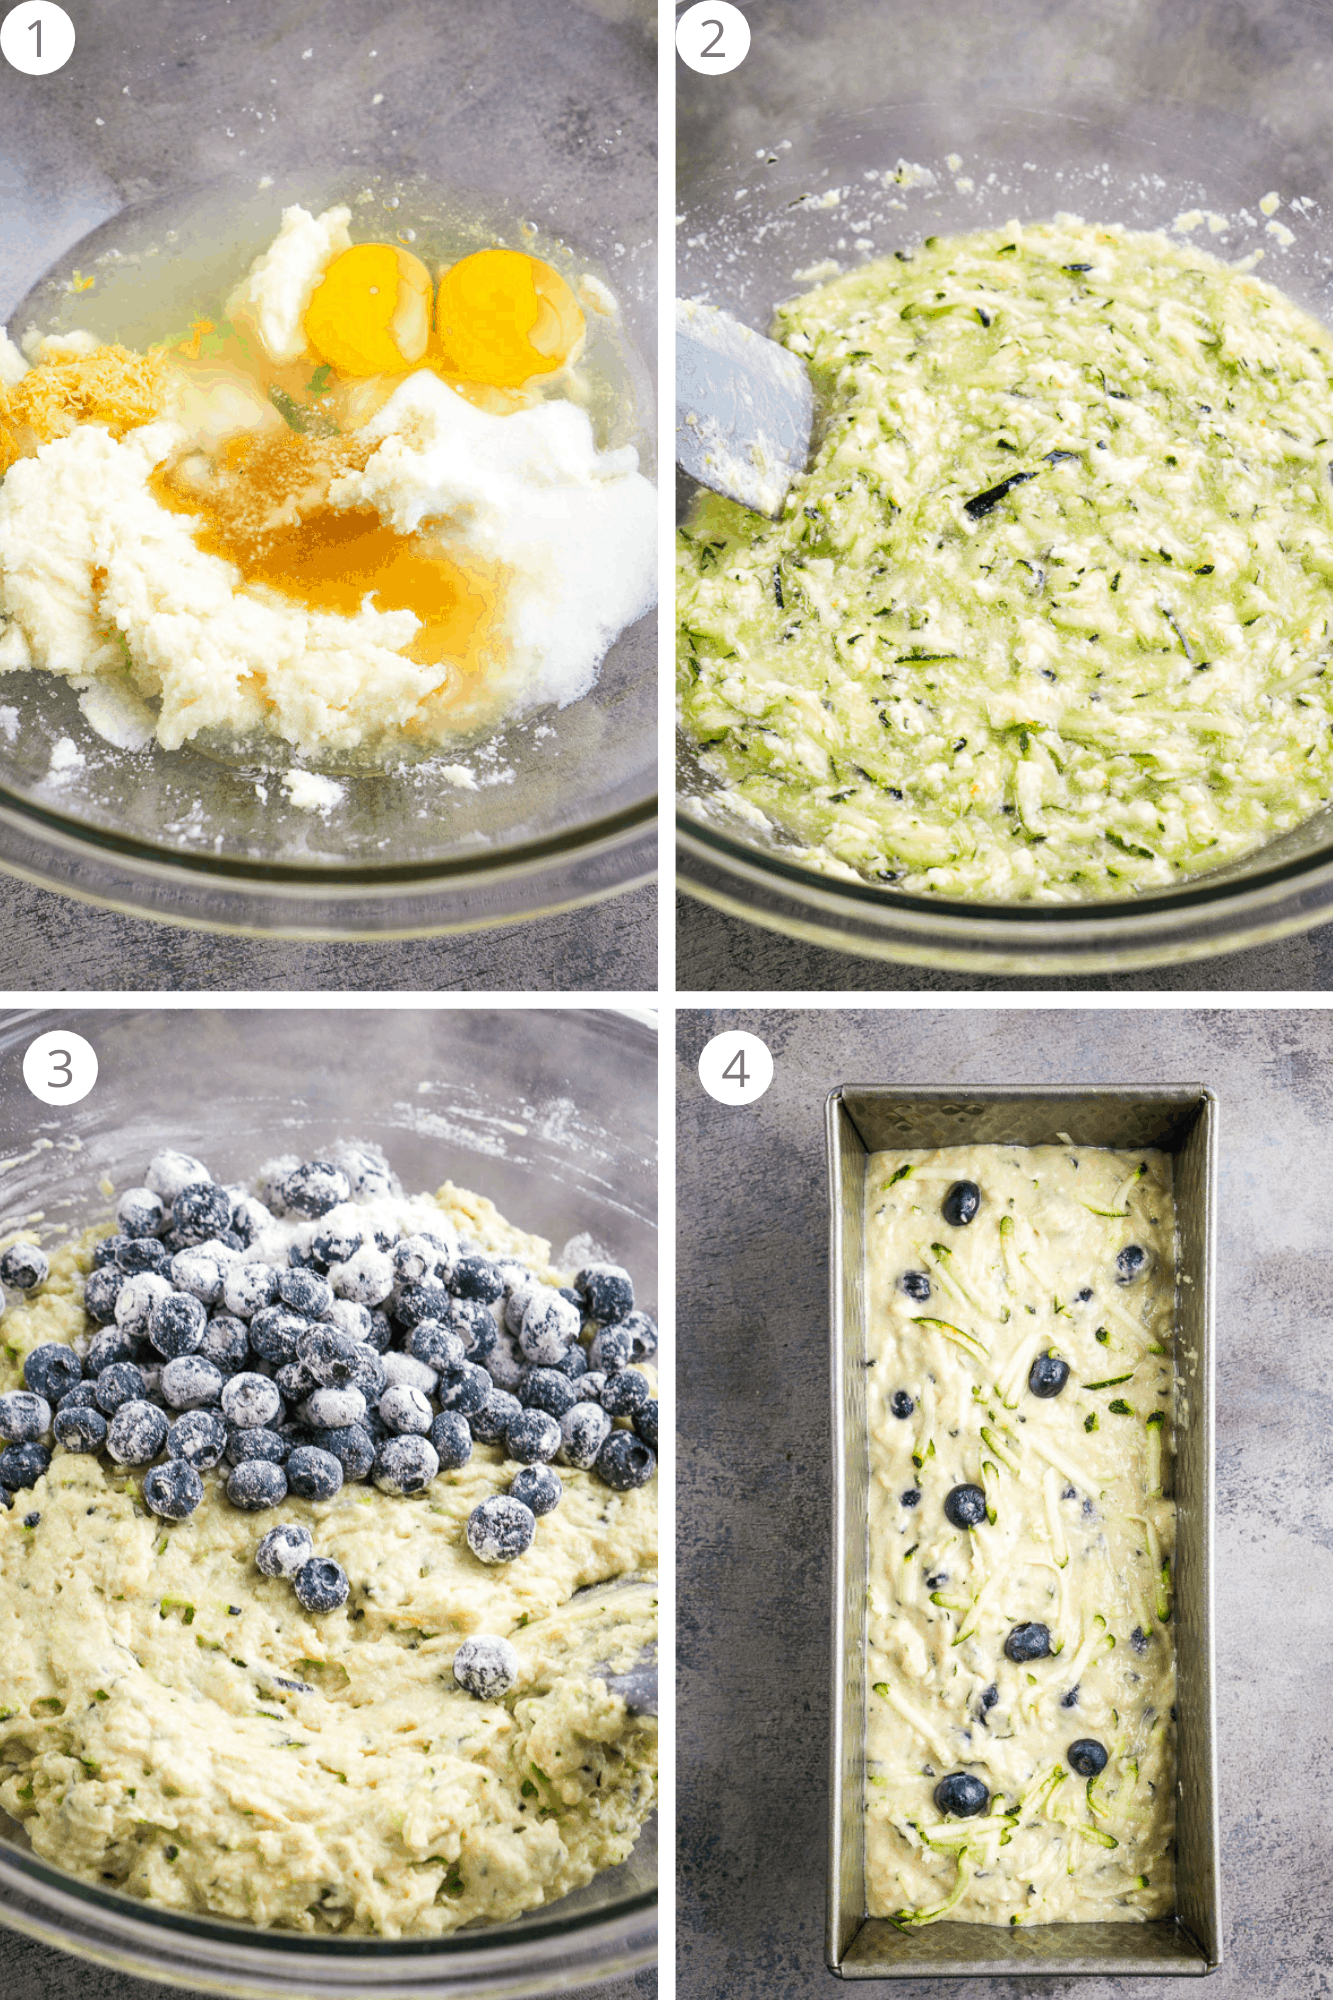 4 step process shots showing how to make blueberry zucchini bread